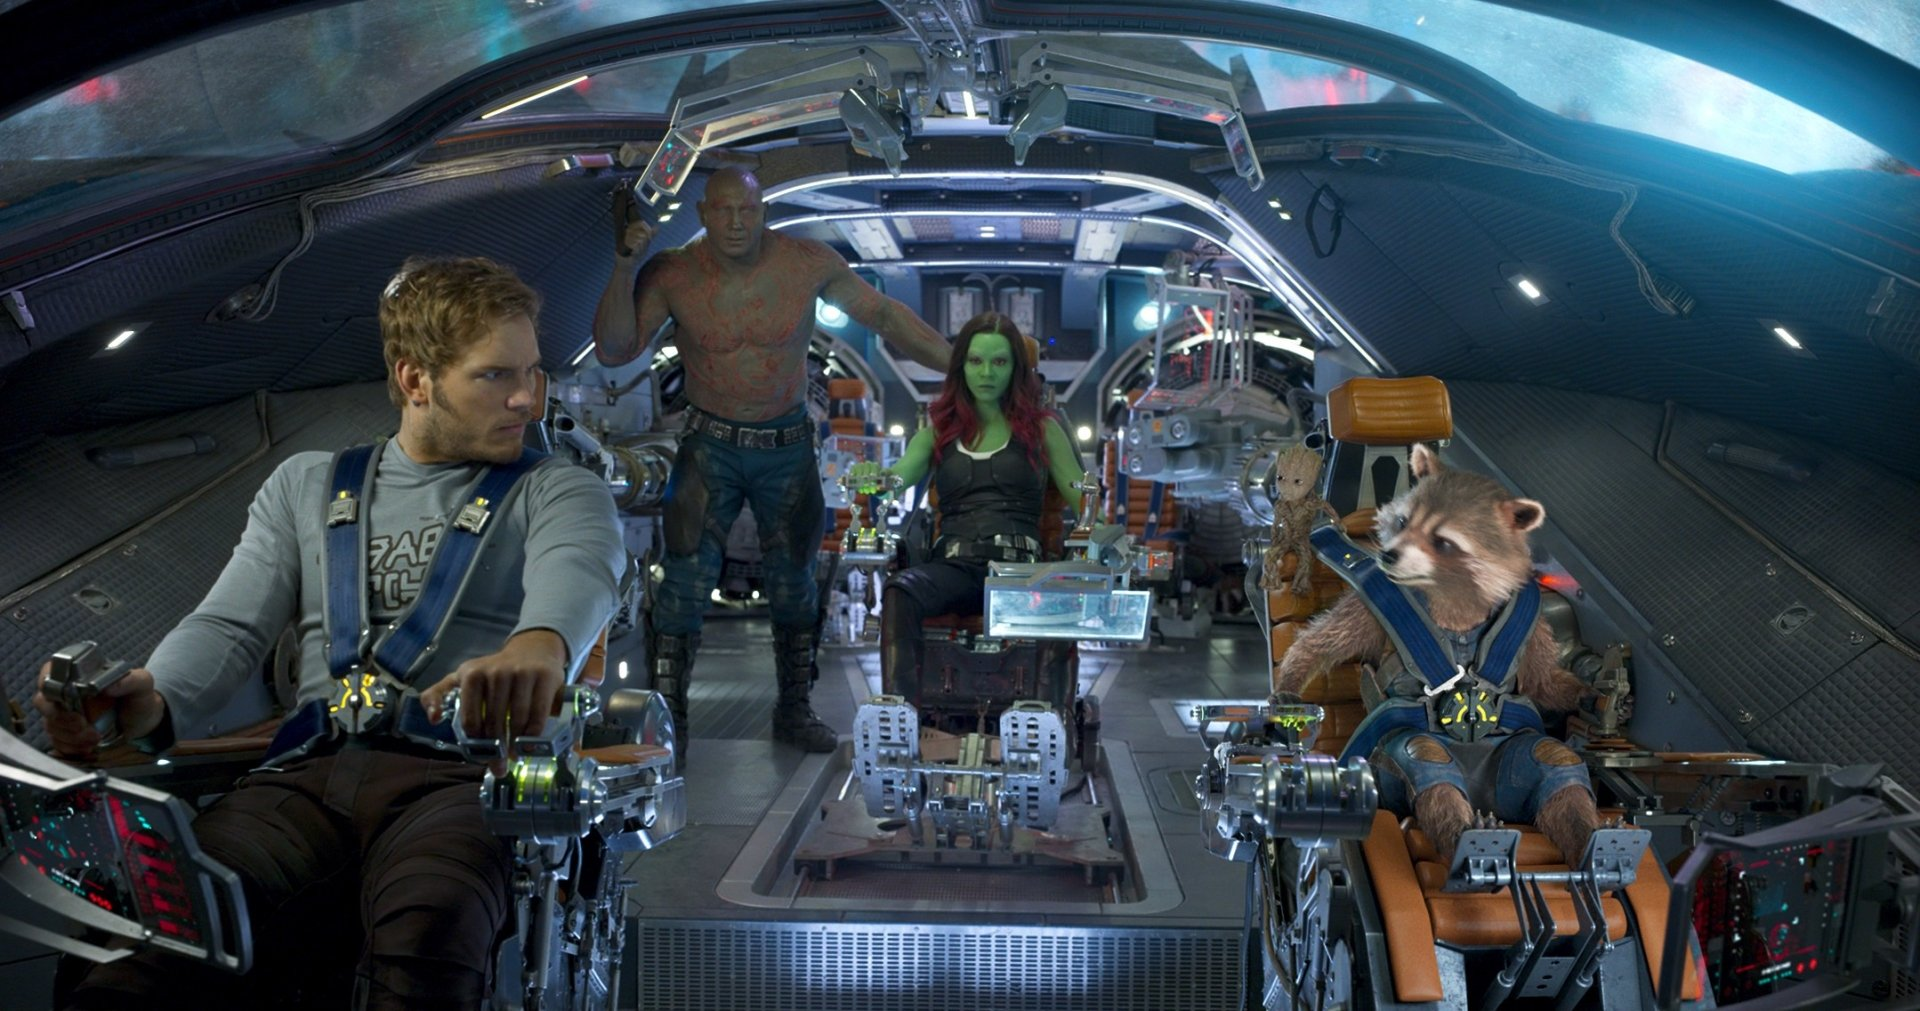 Movie - Guardians of the Galaxy Vol. 2  Star Lord Gamora Rocket Raccoon Drax The Destroyer Baby Groot Chris Pratt Wallpaper